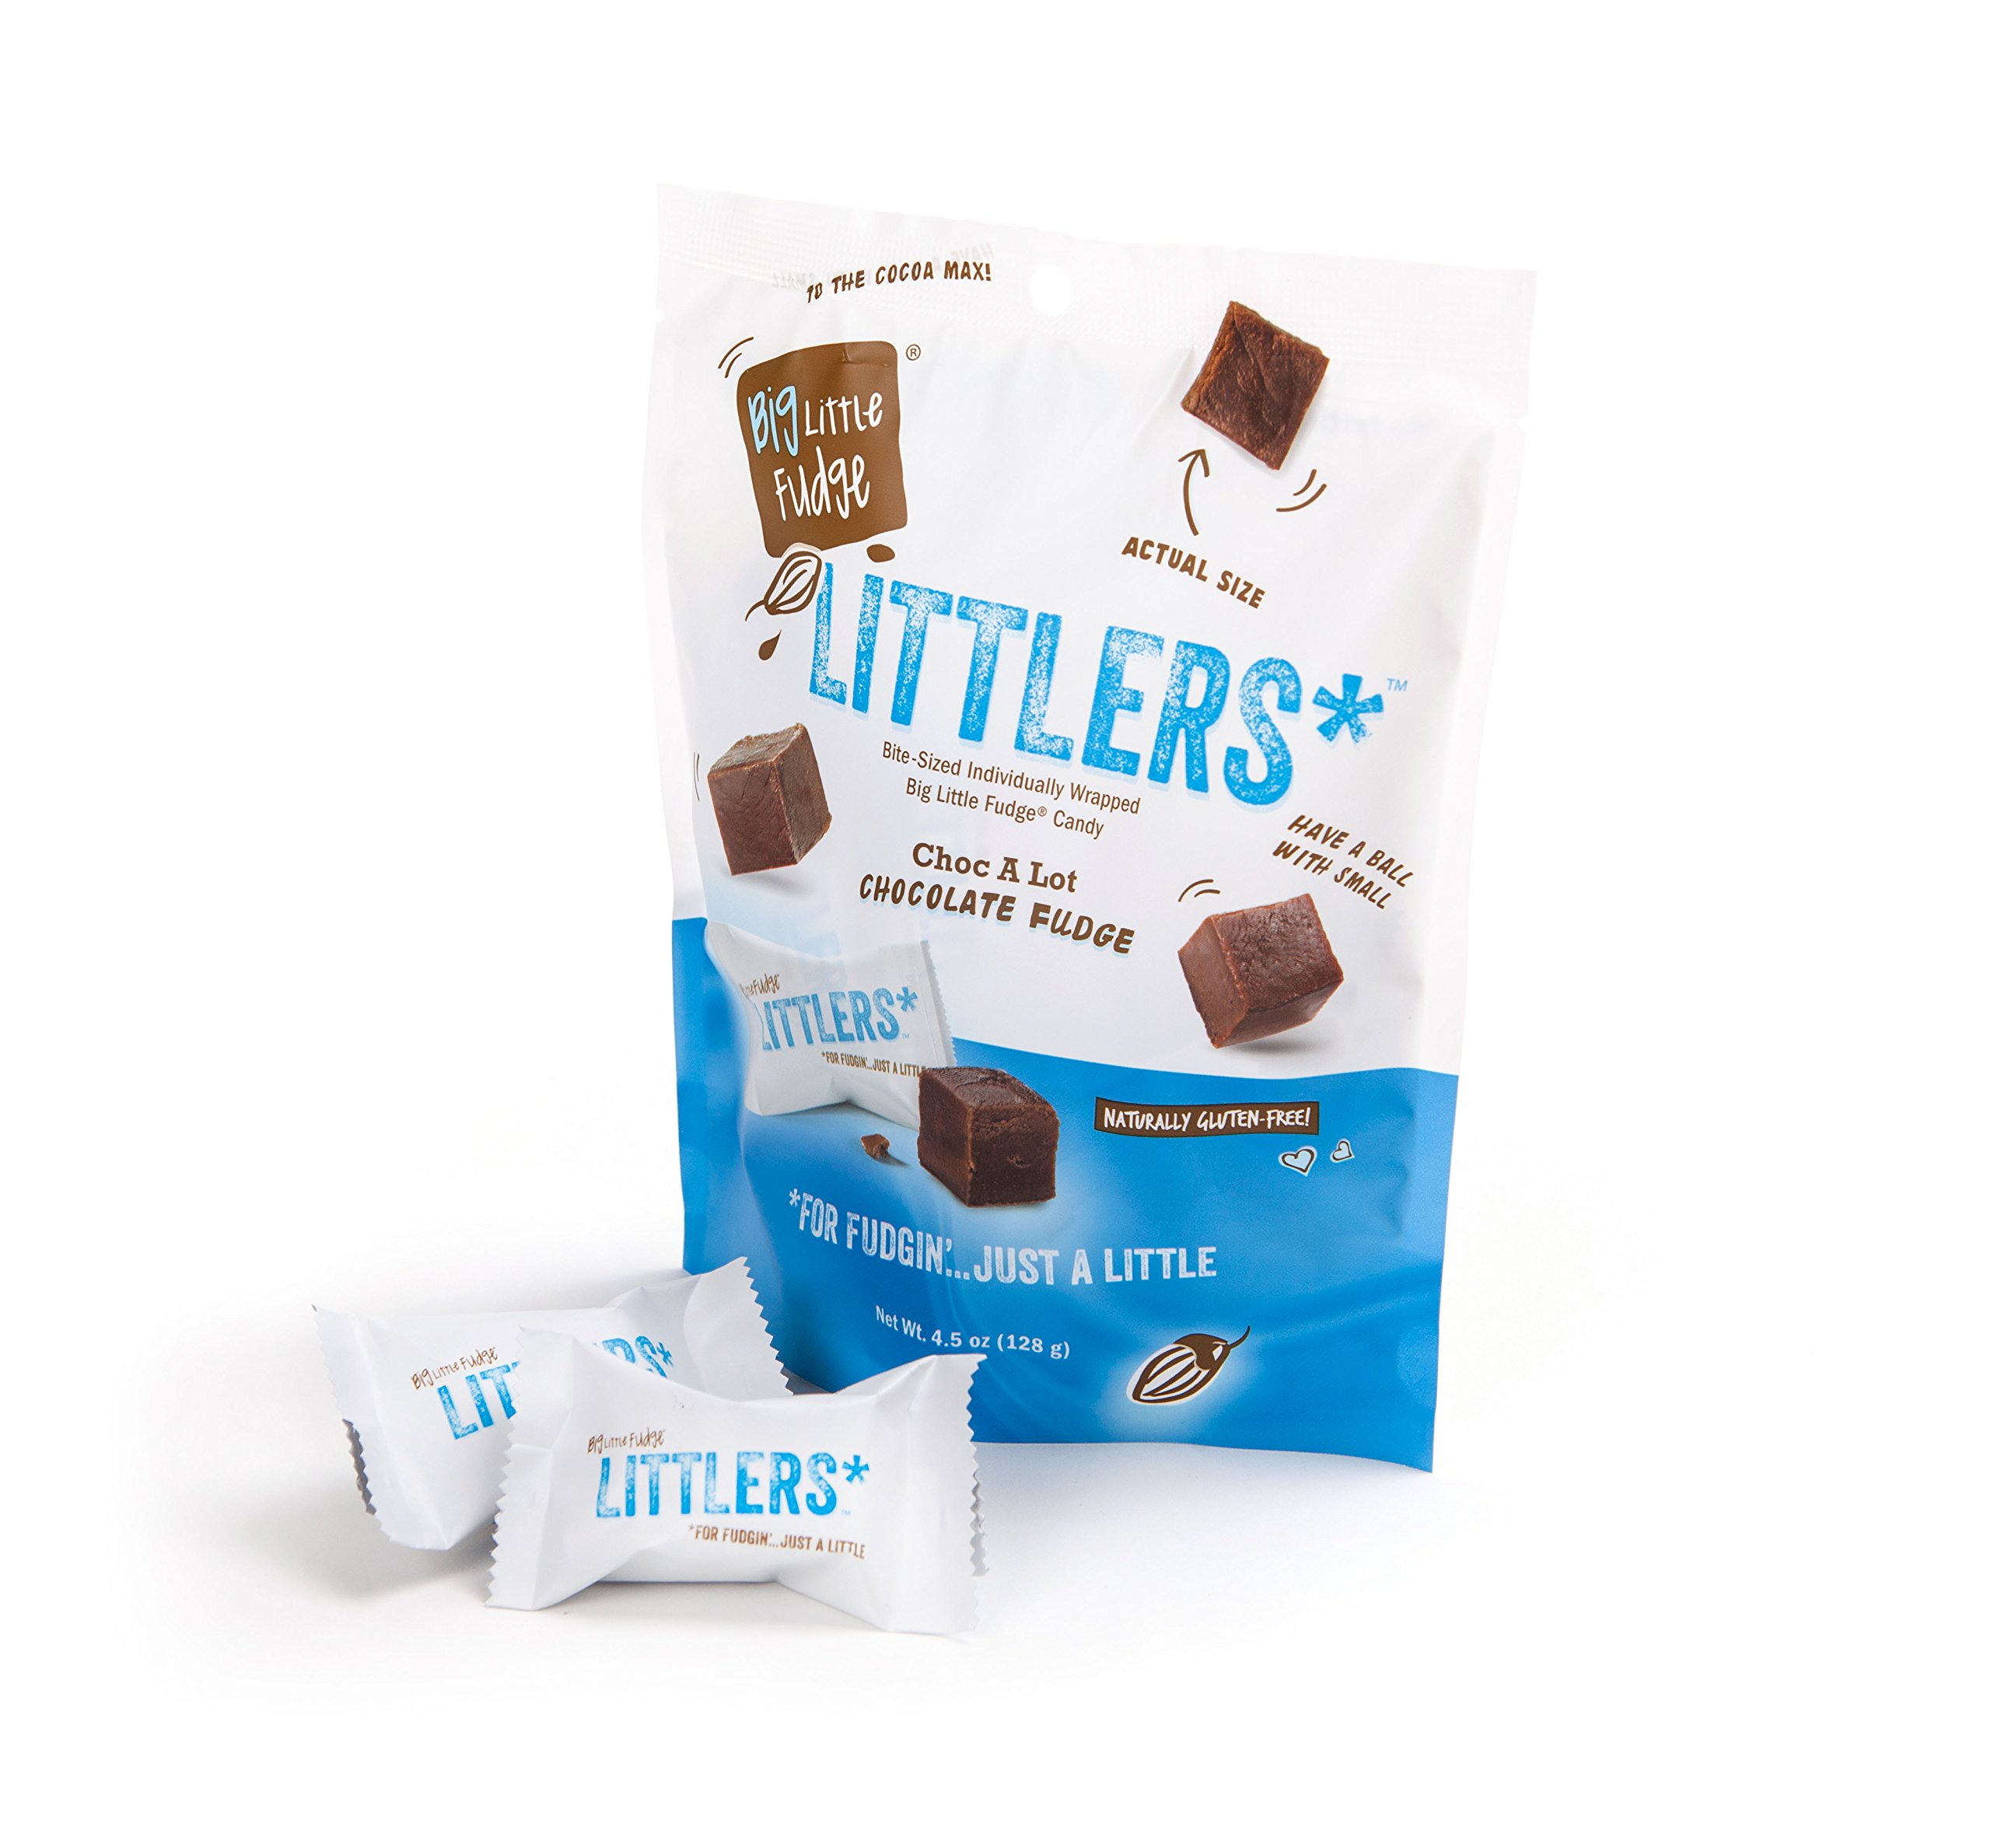 Littlers Miniature Wrapped Fudge Bites 4.5 oz Stand Up Bag (4 Pack)